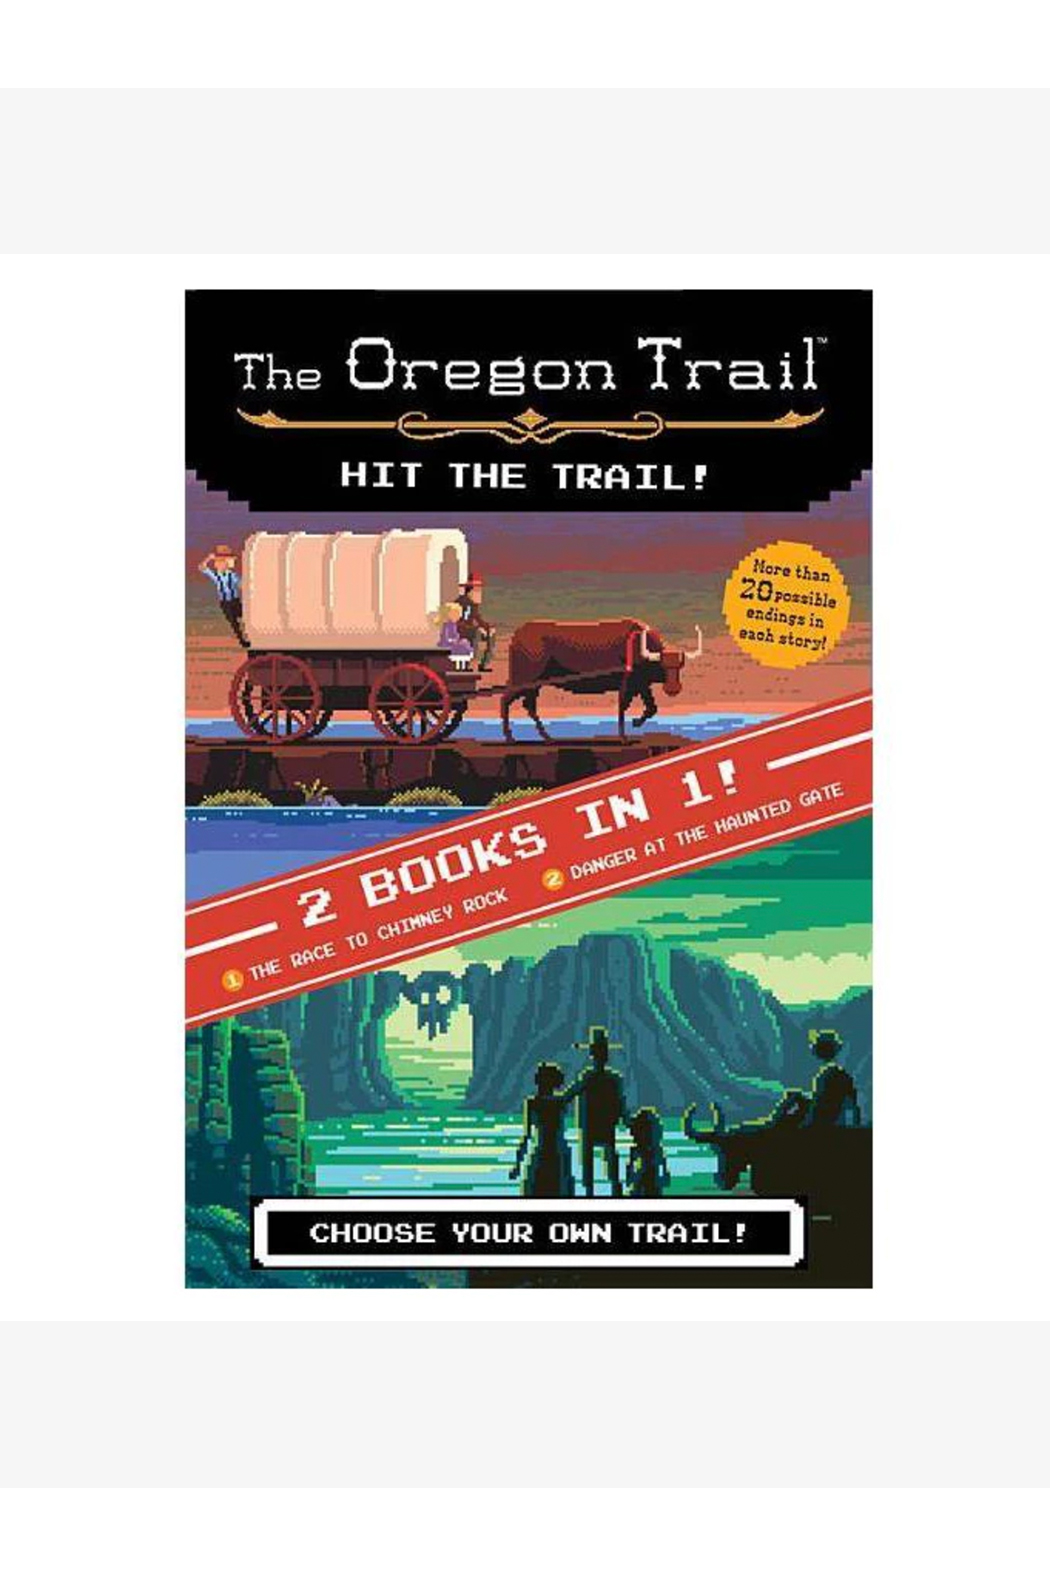 Houghton Mifflin Harcourt  The Oregon Trail Hit The Trail! - Main Image